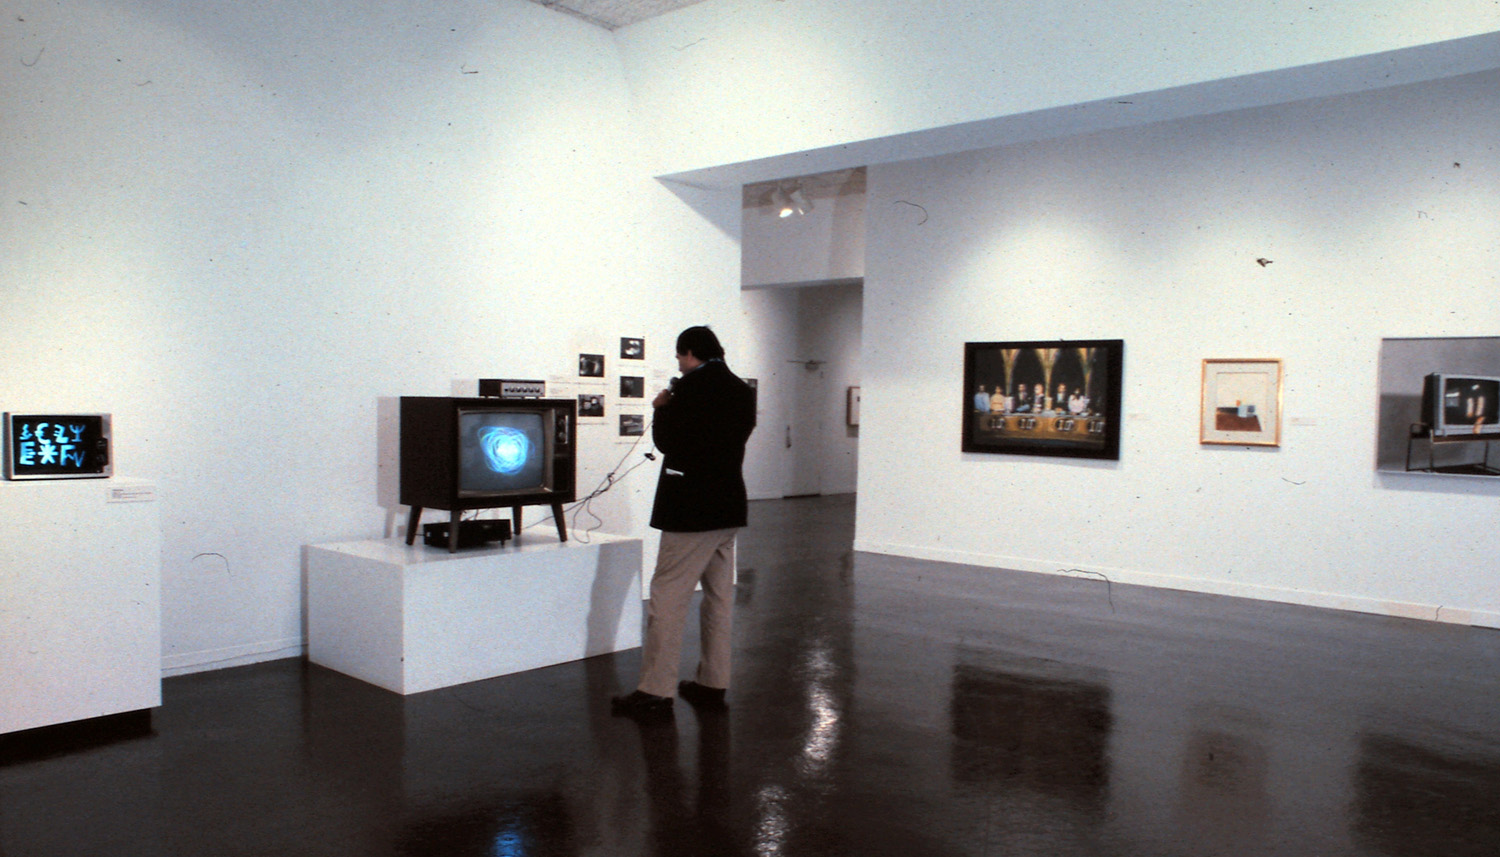 Left to right: Isidore Isou, Ragged Television; Nam June Paik, Participation T.V.; Peter Moore, Photo Documentation; unidentified; unidentified; Robert Bechtle, Zenith.